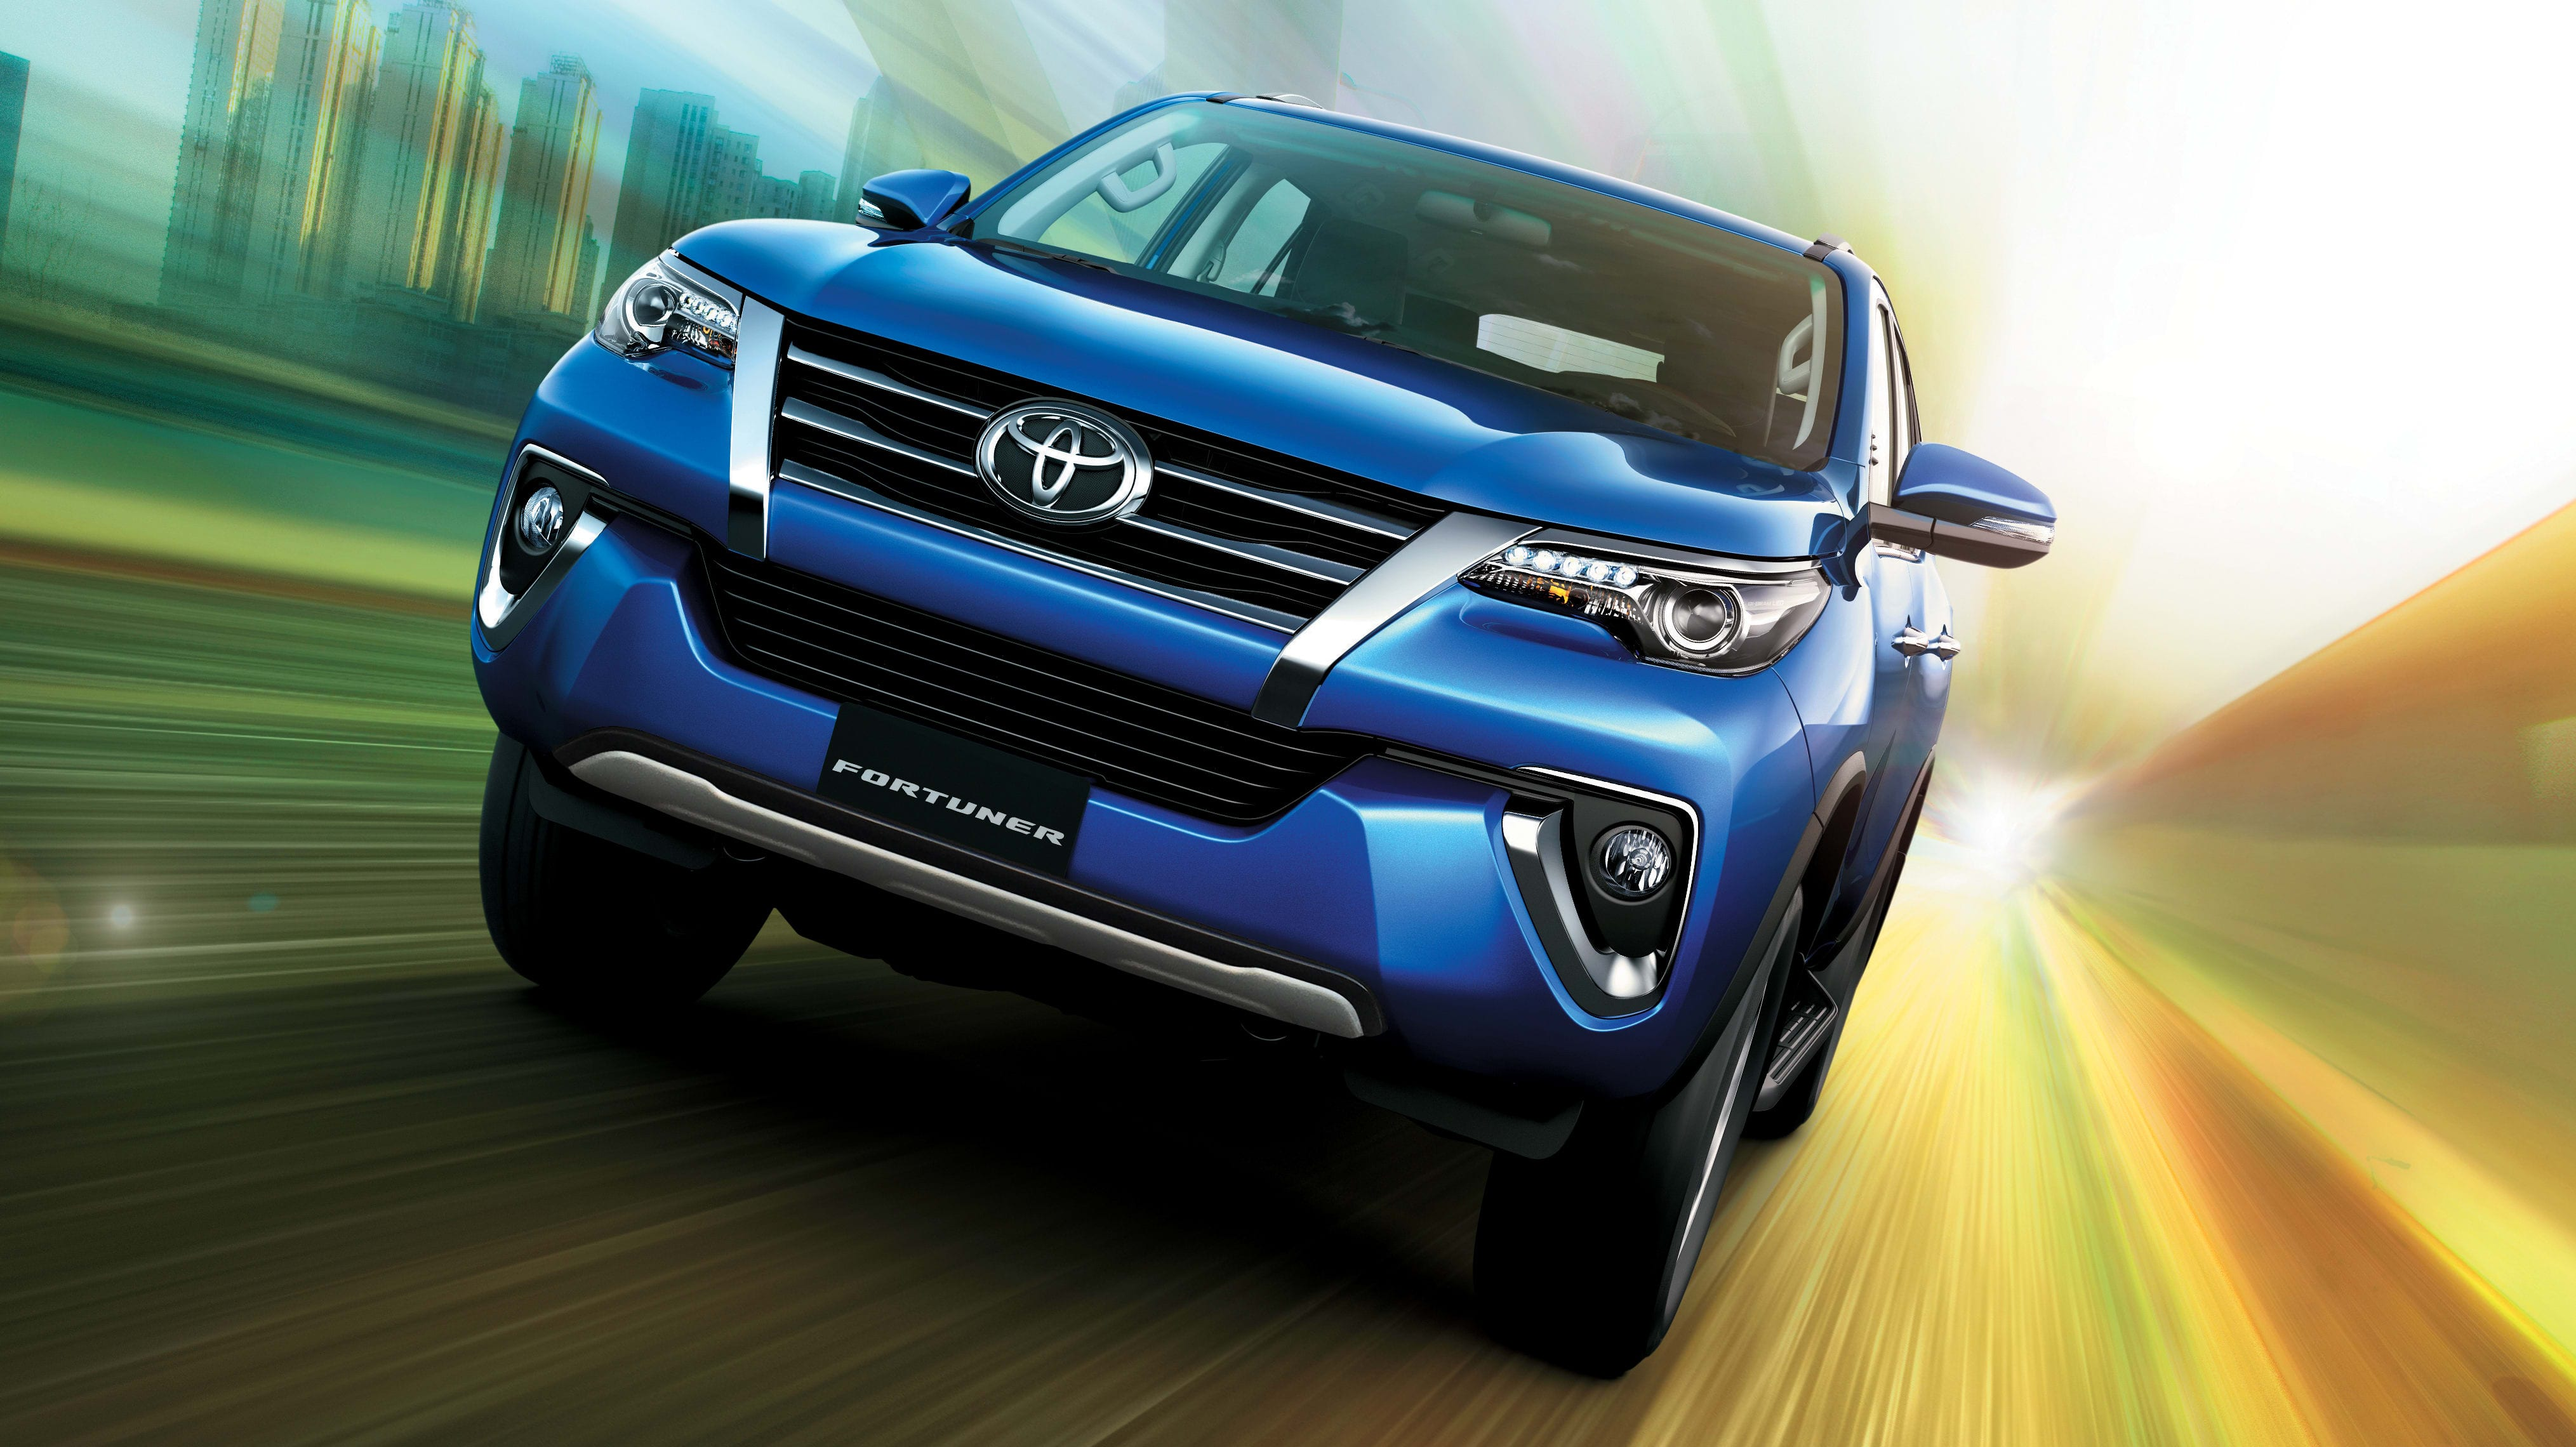 2019 Toyota Fortuner VXR Price in UAE, Specs & Review in ...